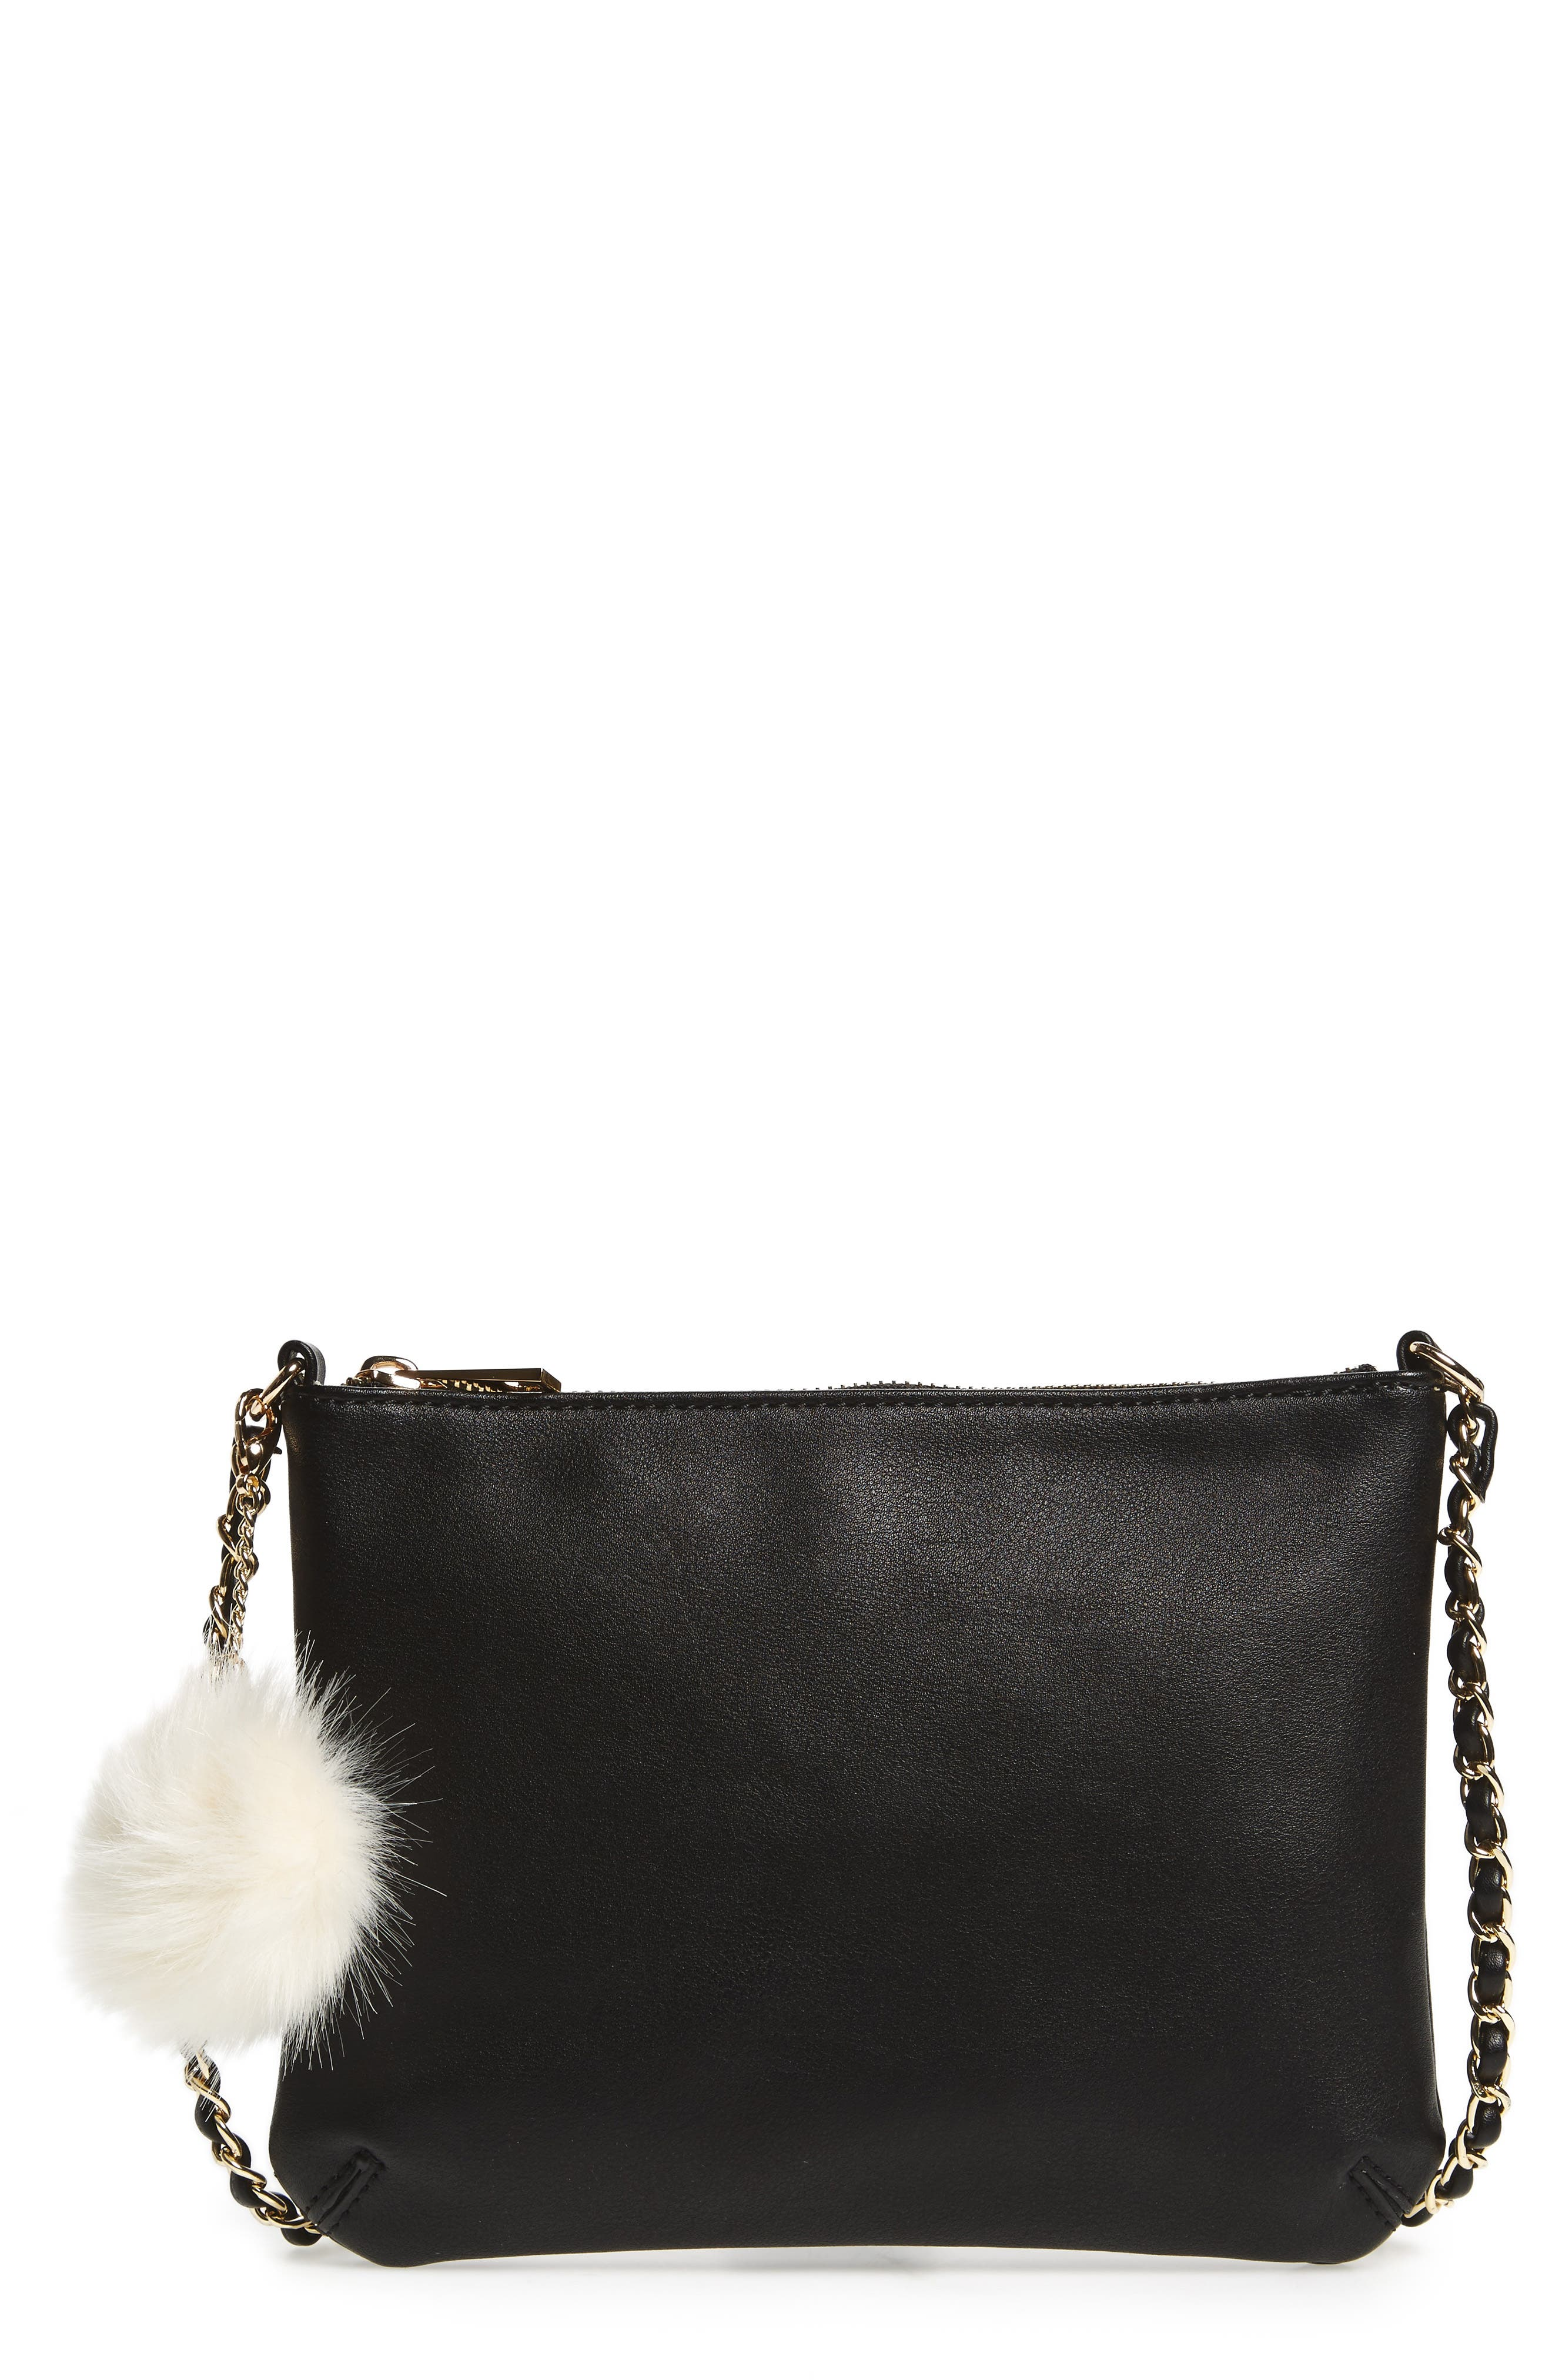 Main Image - Emperia Faux Leather Crossbody Bag with Faux Fur Pom